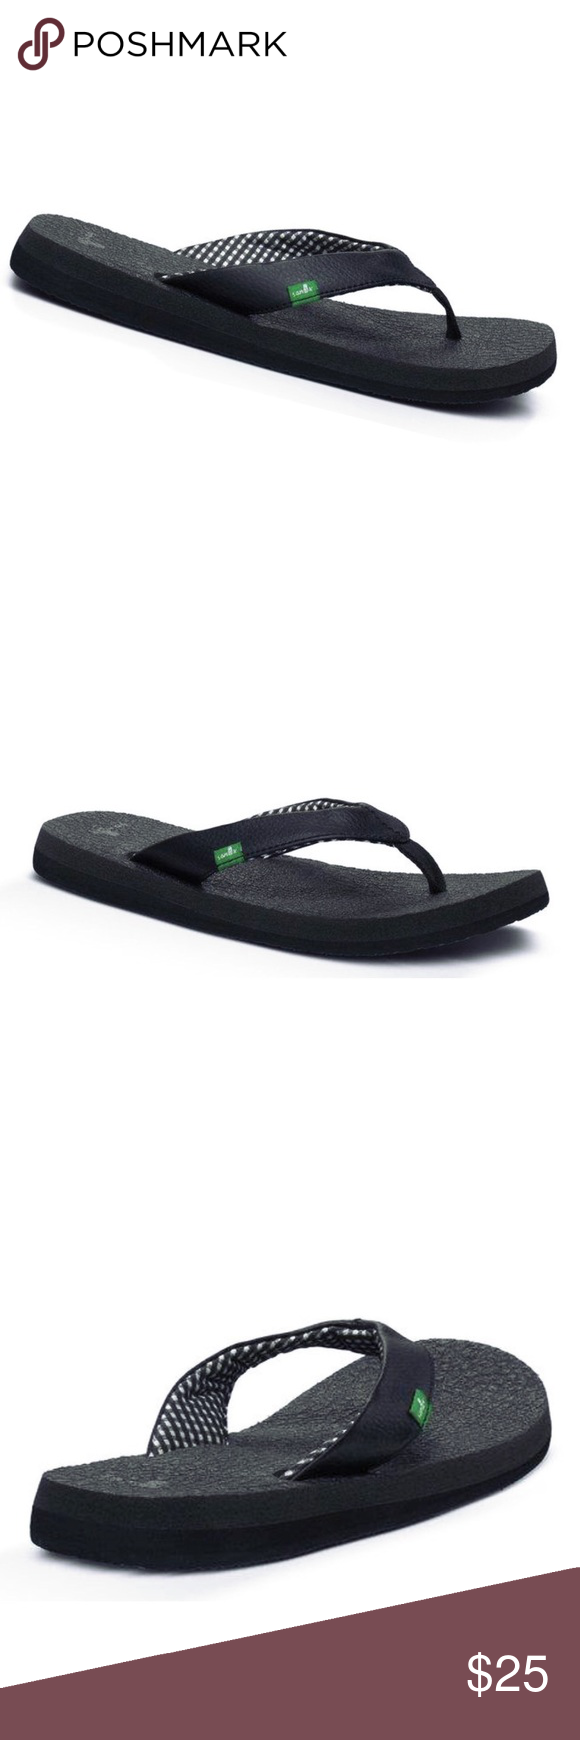 315648969 NWT Sanuk Black Yoga Mat Flip Flop Thong Sandals Brand new with tags Sanuk  women s yoga